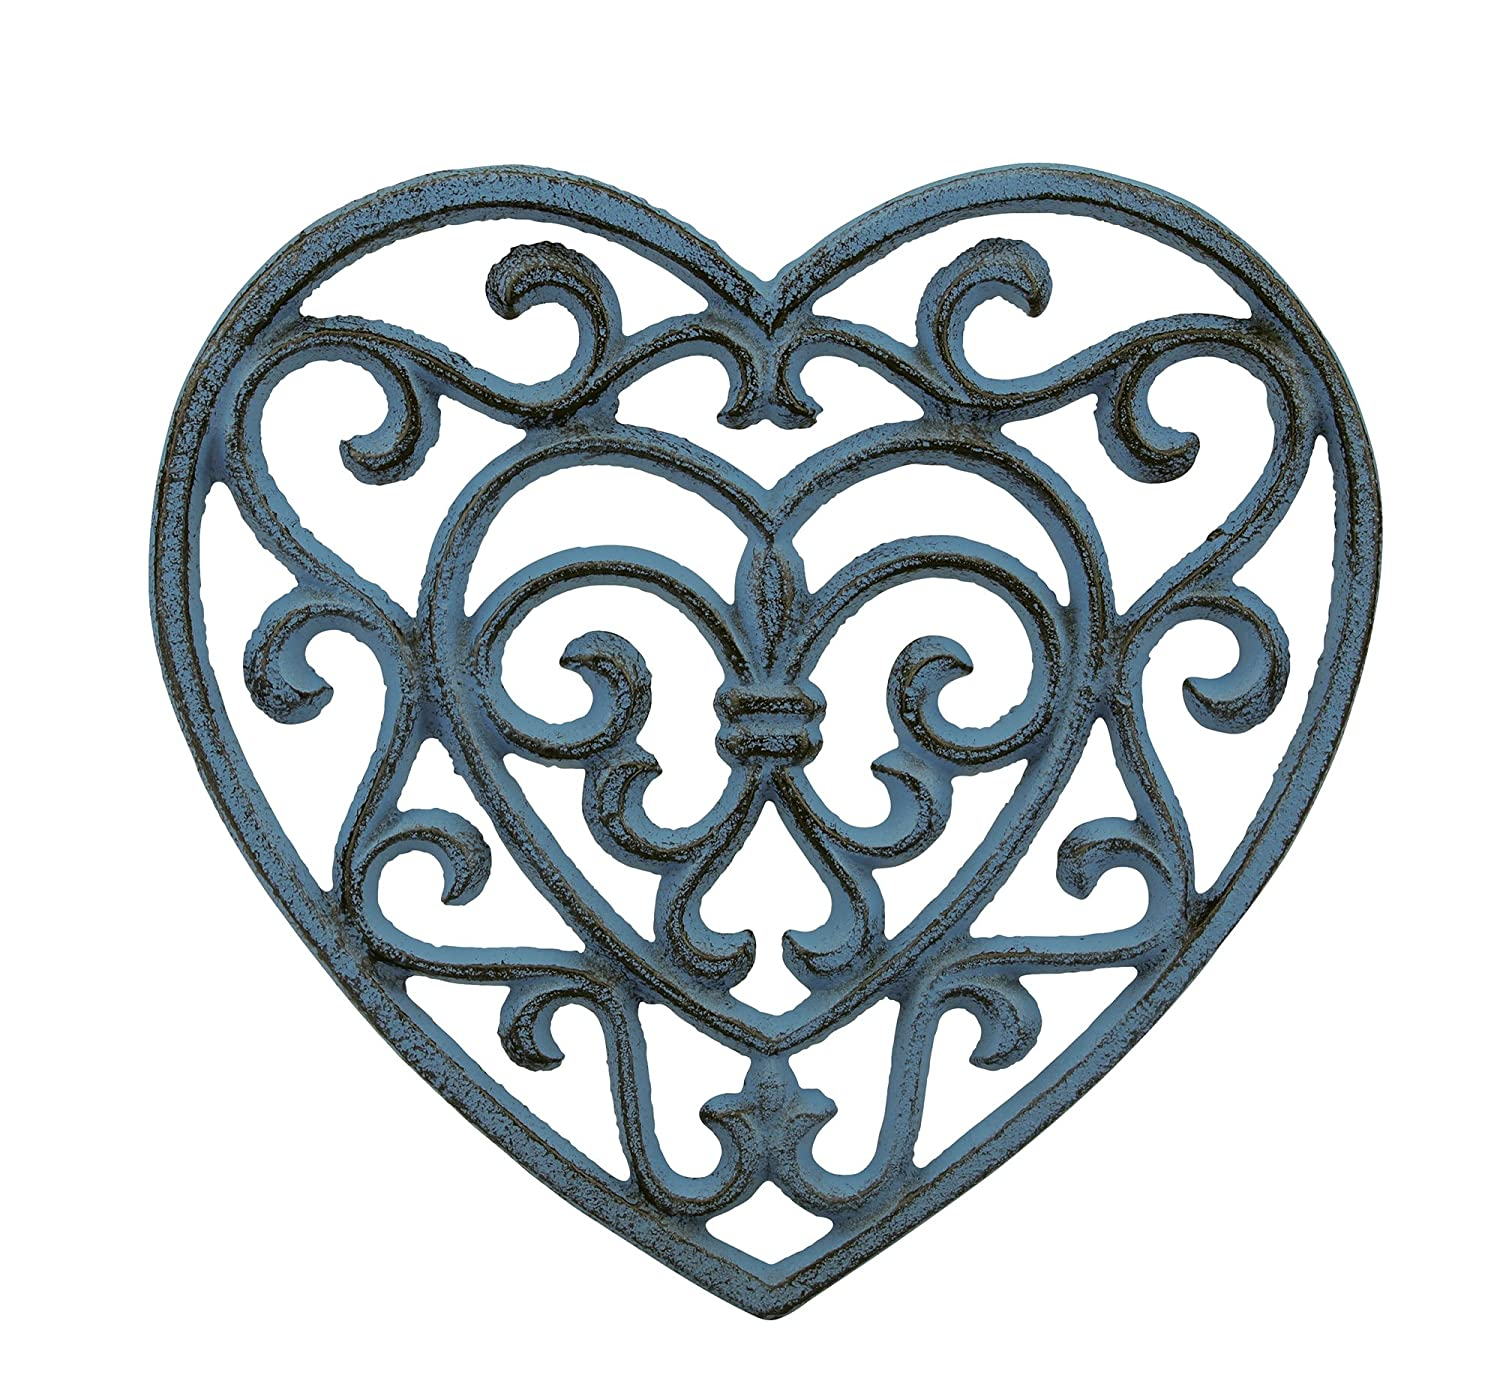 Stonebriar Country Rustic Denim Blue Heart Shaped Cast Iron Trivet with Rubber Feet, Heat Resistant Pot Holder for Hot Dishes, Decorative Kitchen Accessory for Table Top or Wall Hanging CKK Home Décor SB-6039A